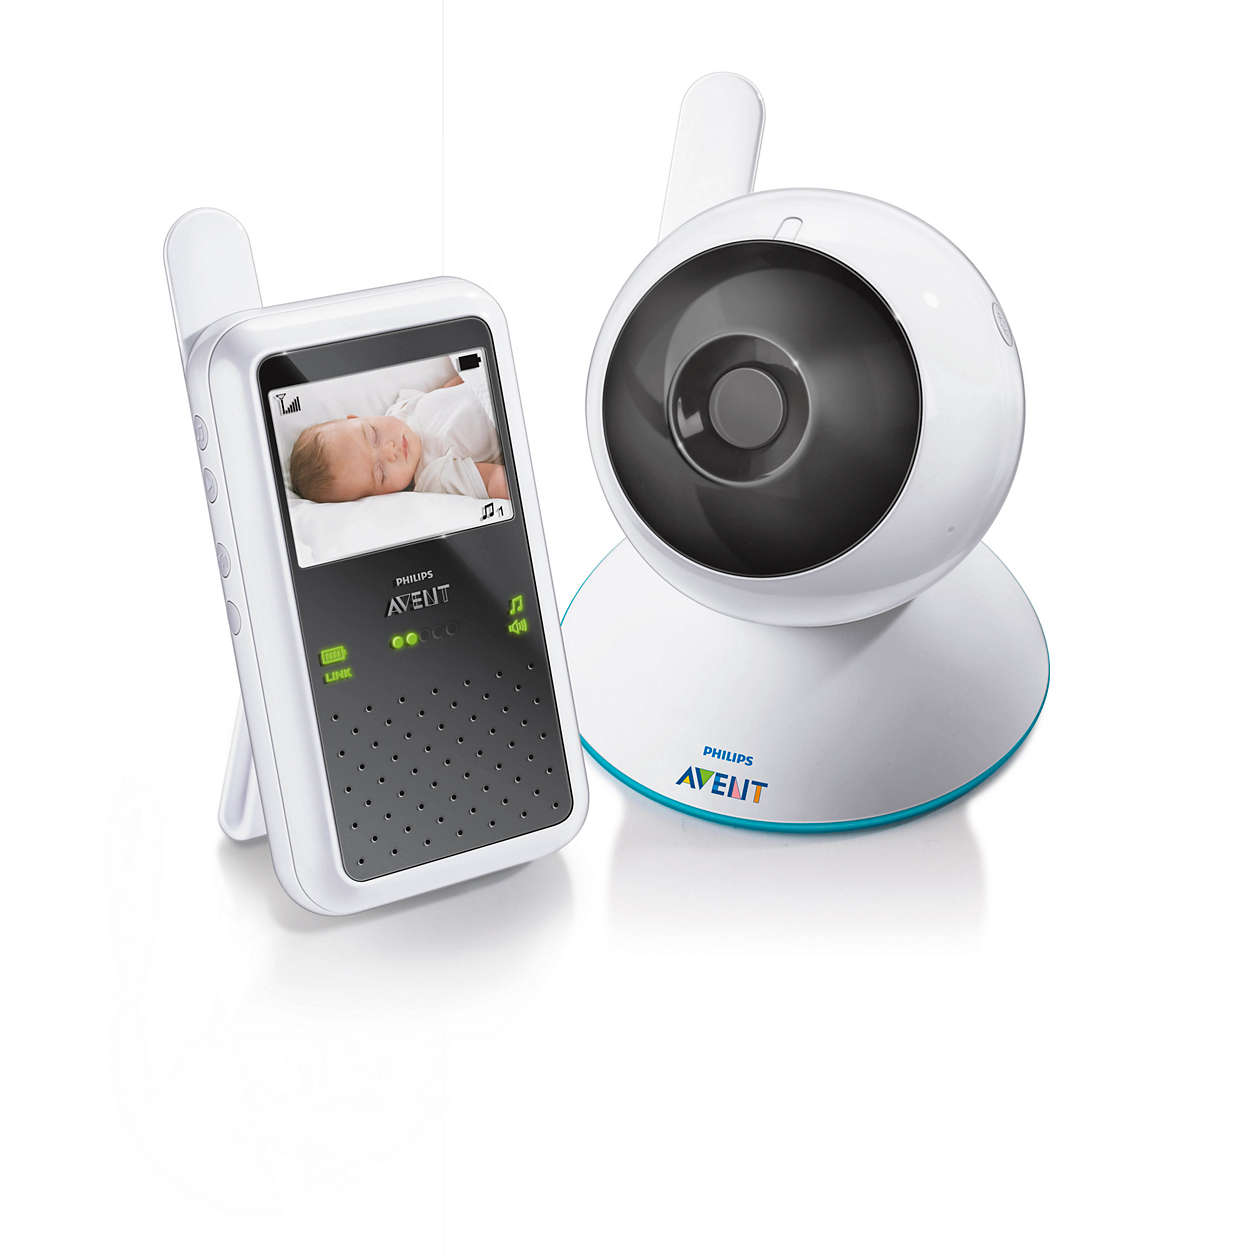 digital video baby monitor scd600 10 avent. Black Bedroom Furniture Sets. Home Design Ideas